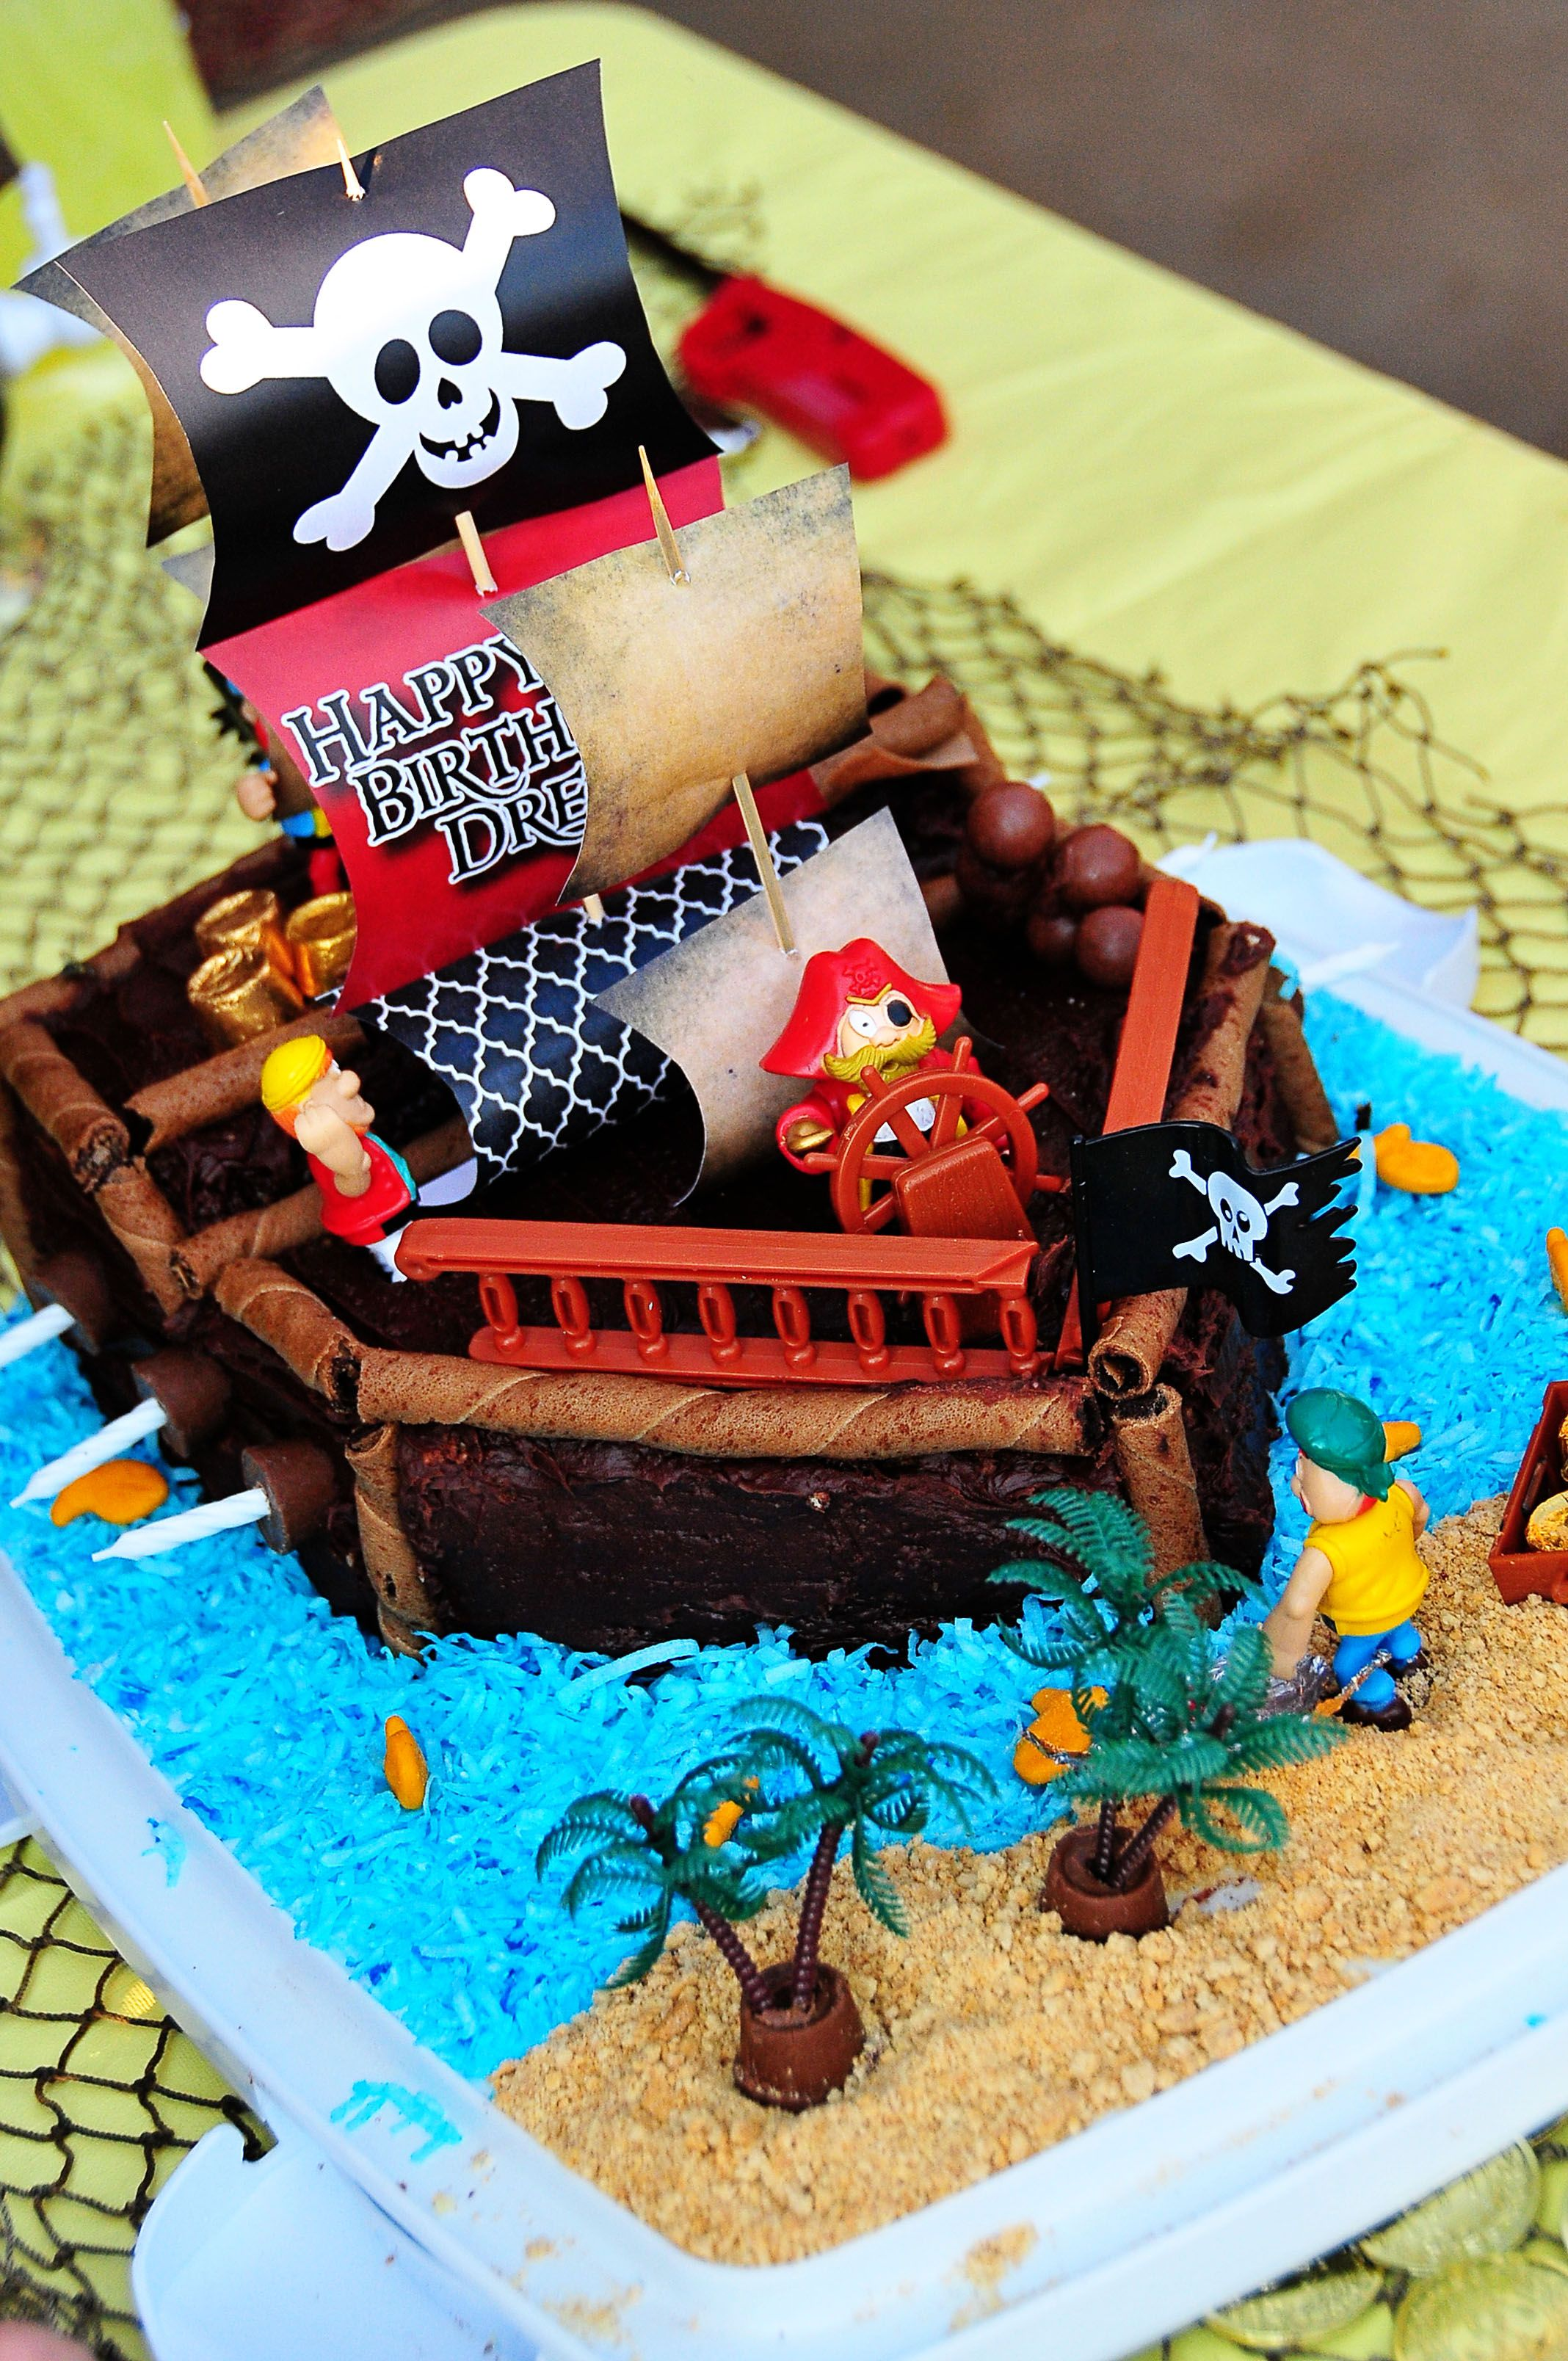 Pirate Cake 2 9x13 sheet cakes layered corners cut off for the